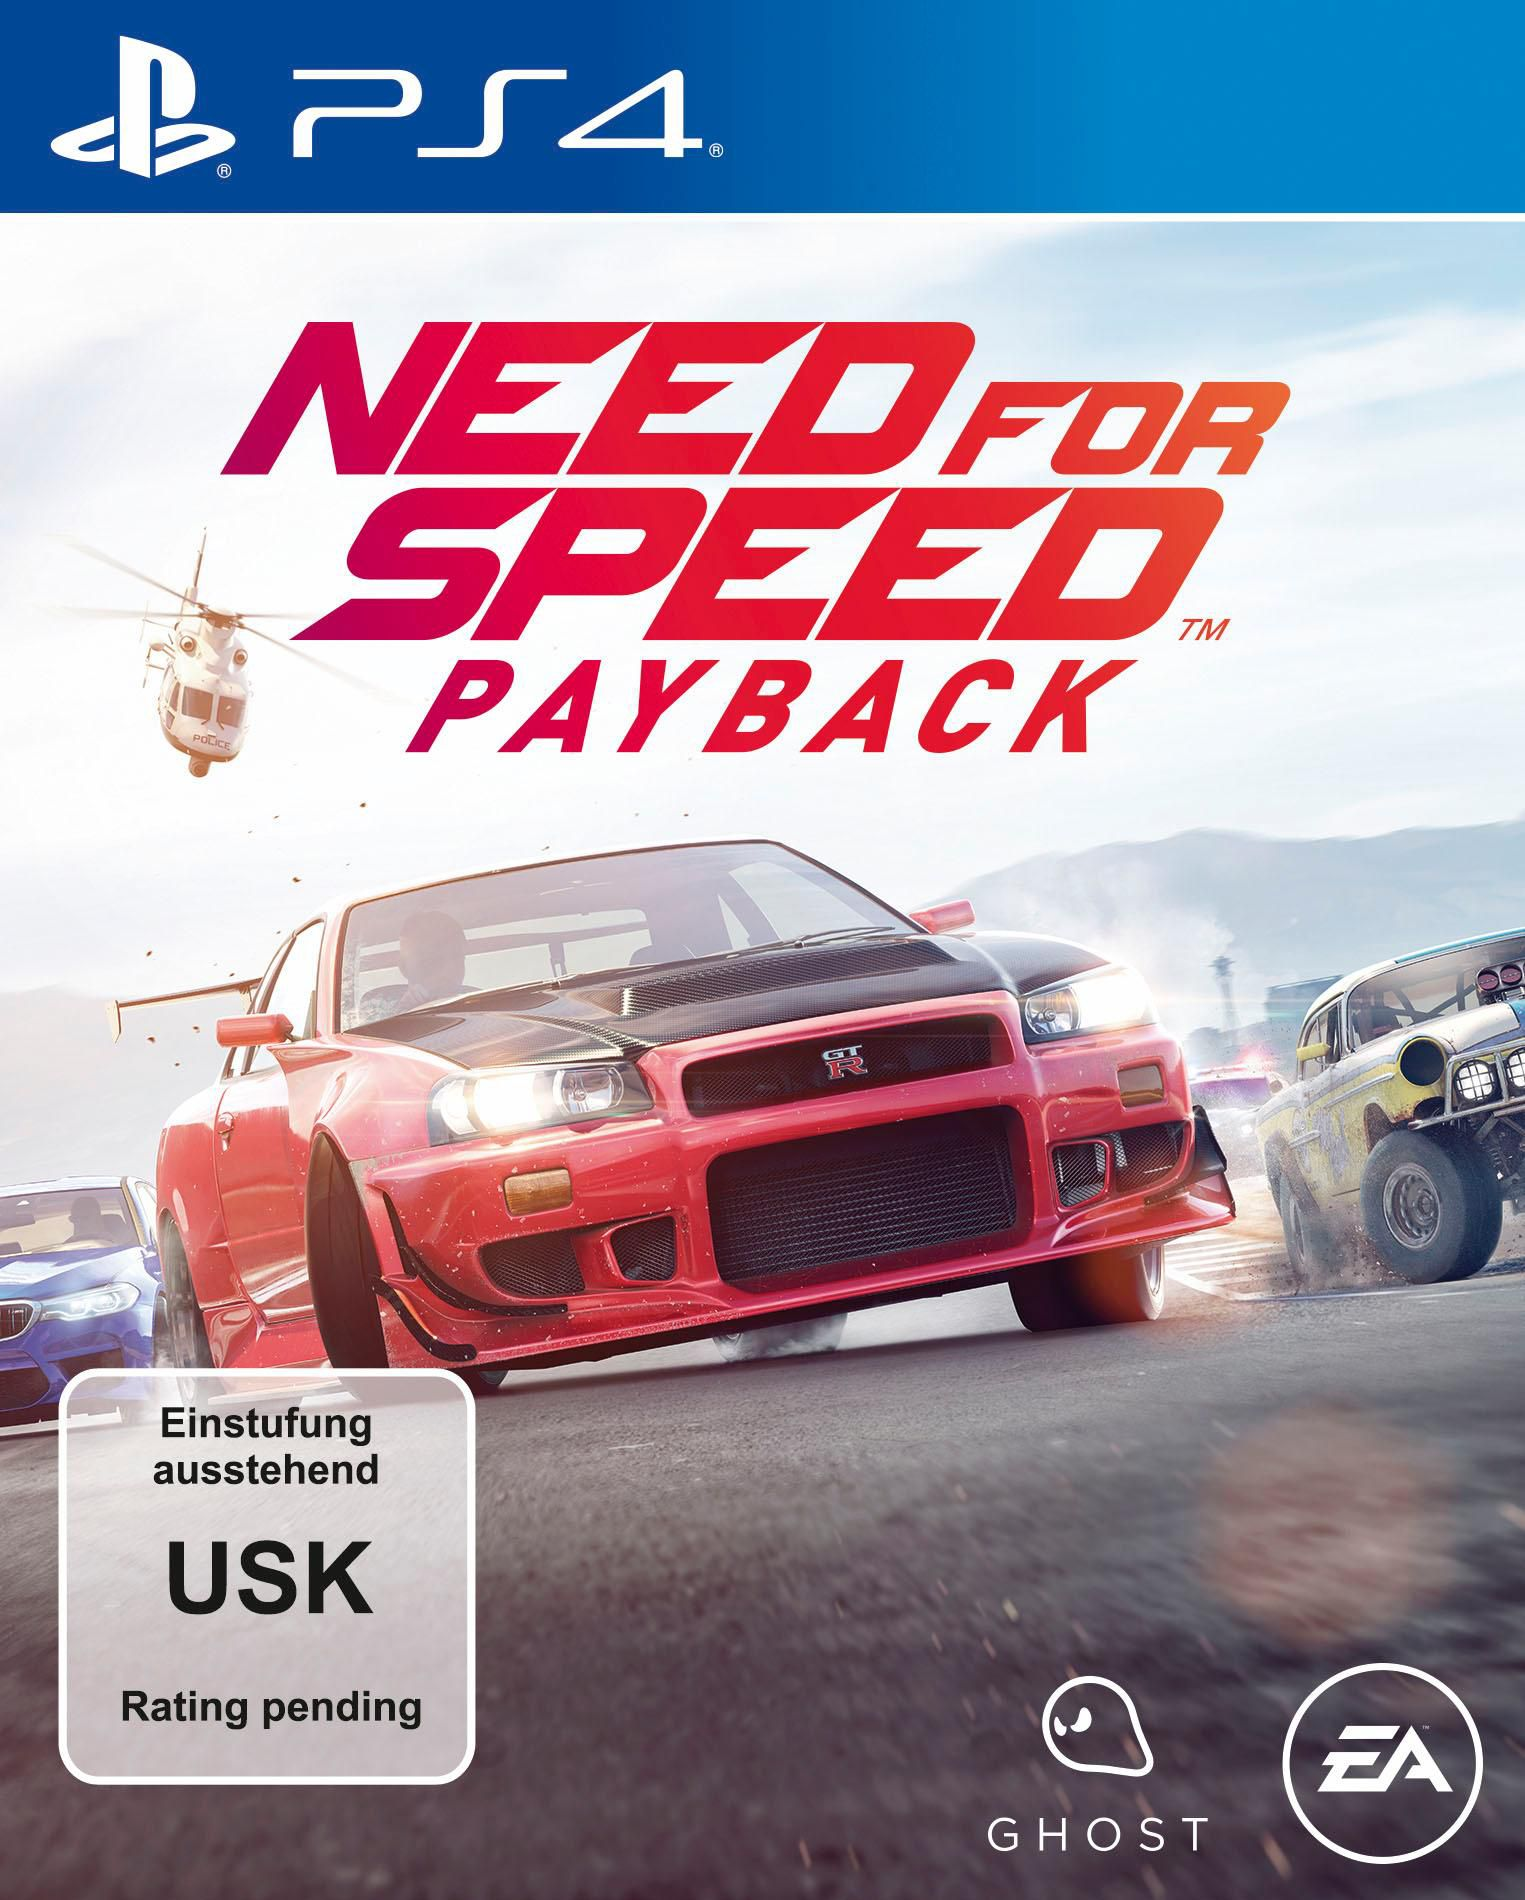 ELECTRONIC ARTS Need for Speed Payback, PlayStation 4-Spiel